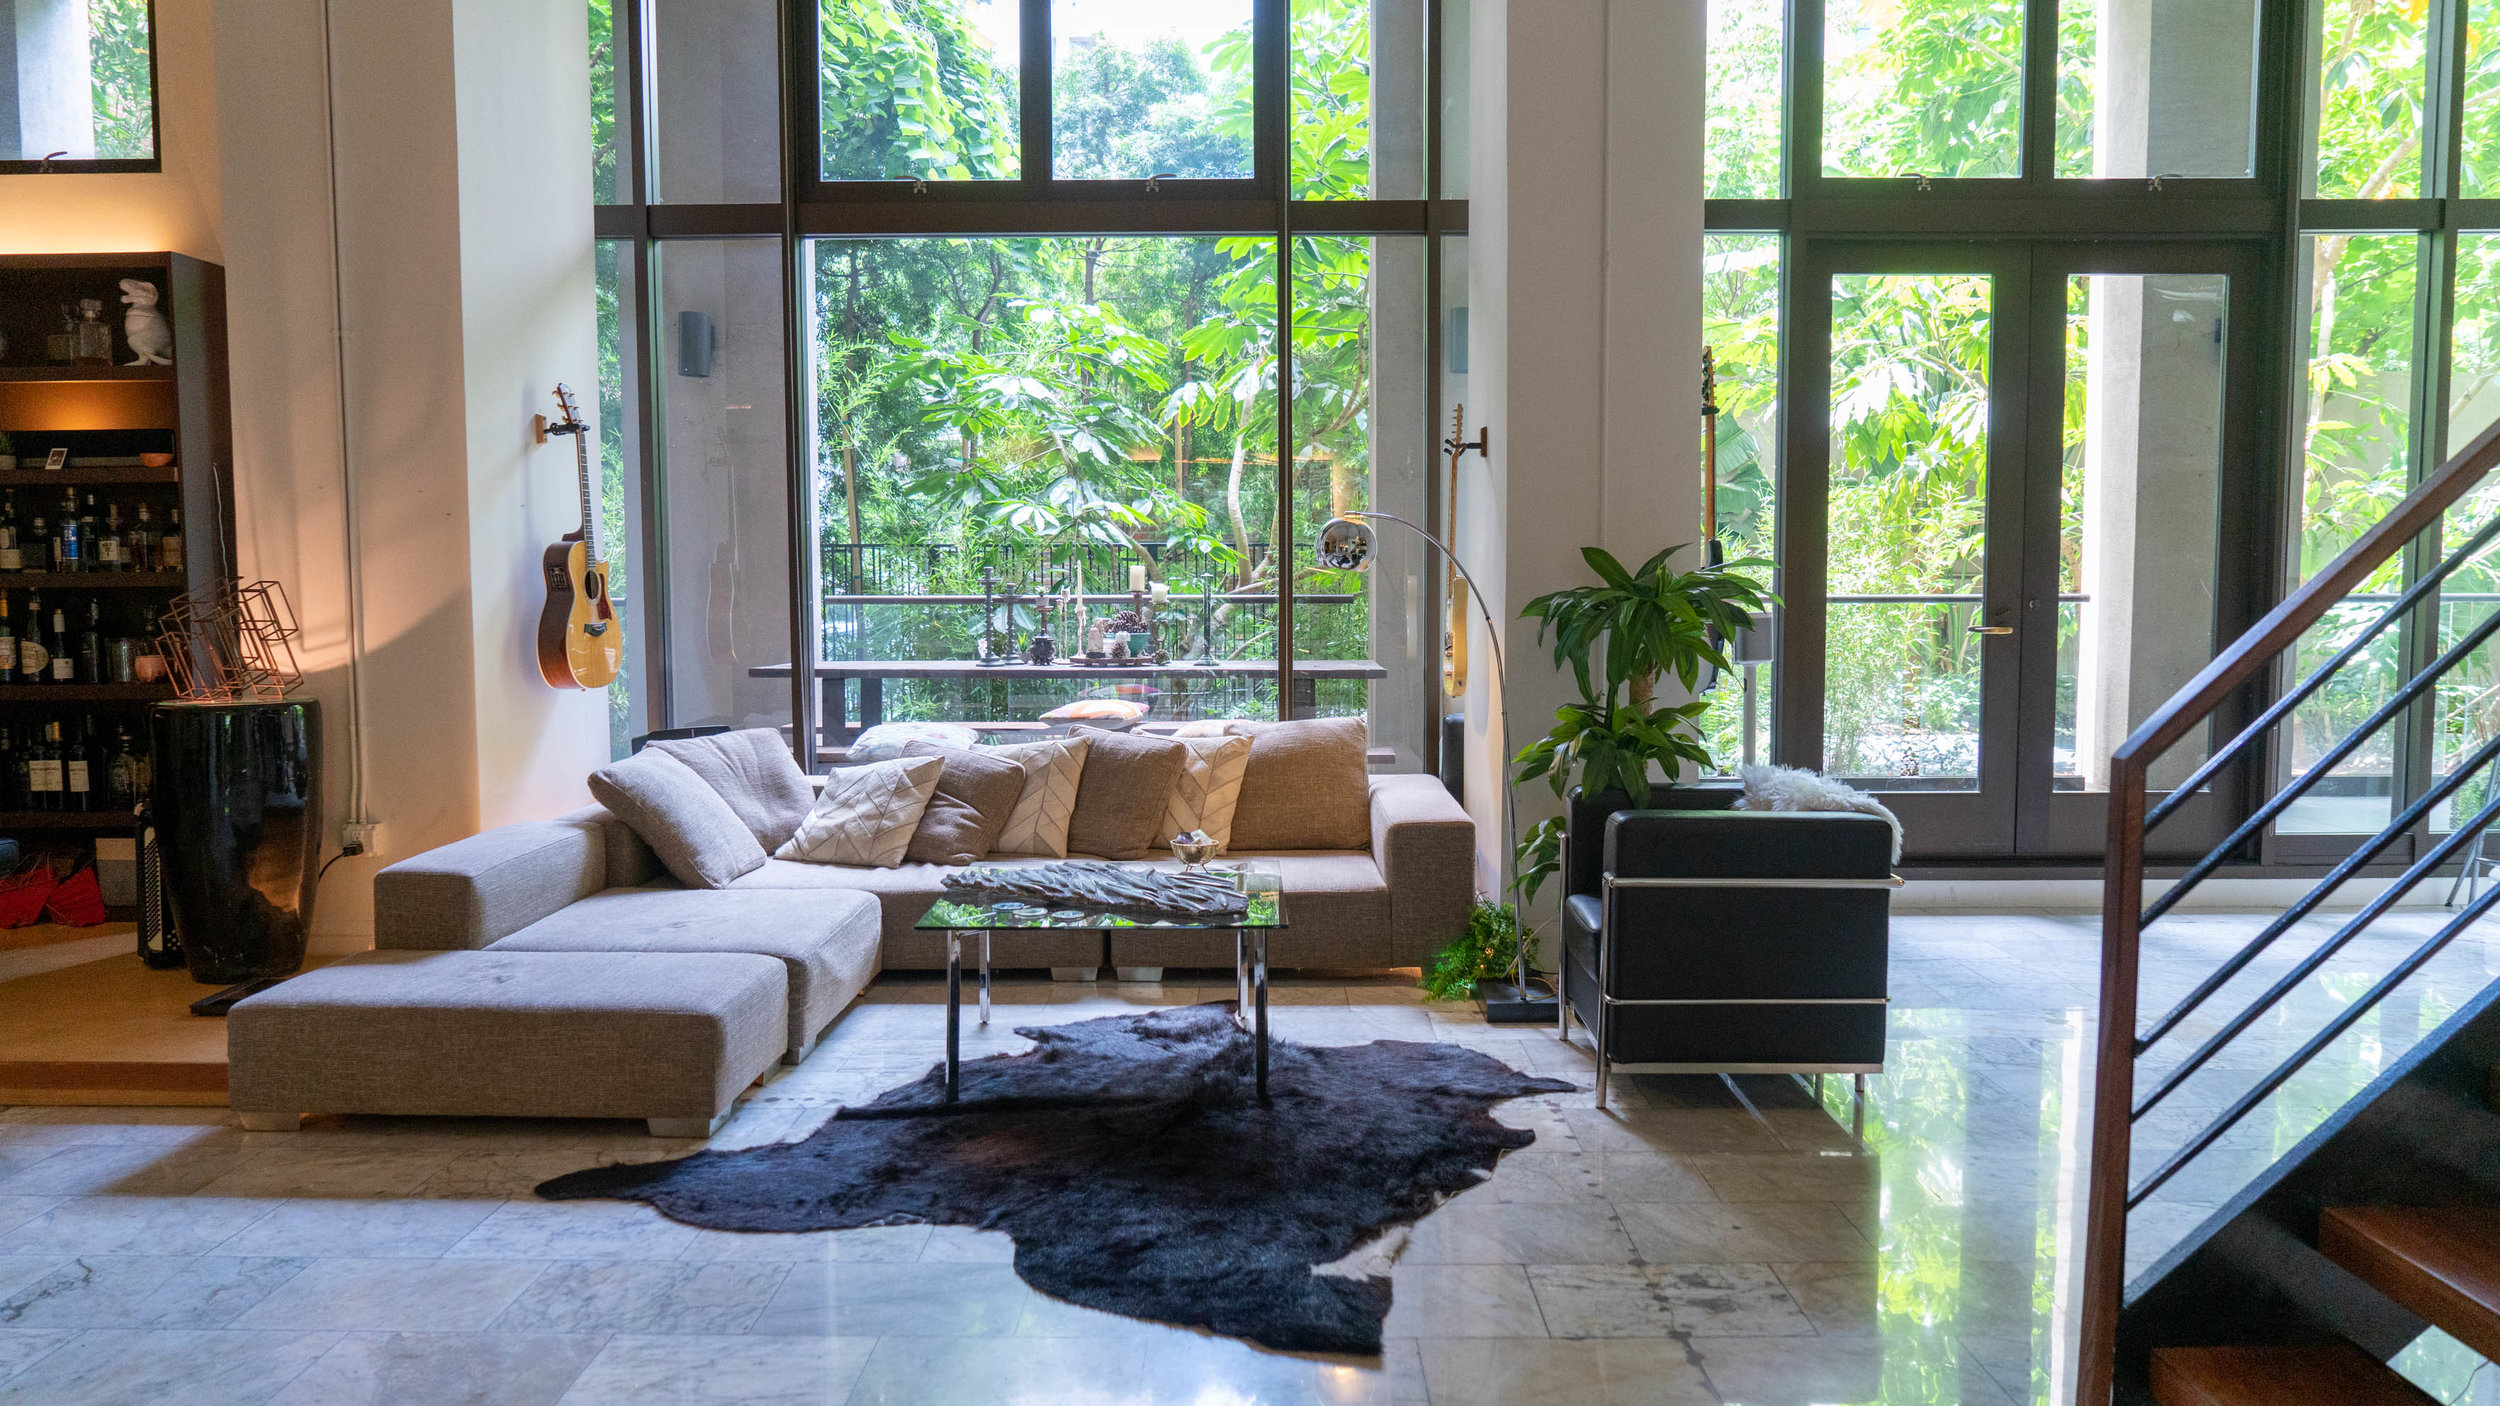 Downtown Sanctuary - DTLAA 2,000 sf ground floor loft in a film-friendly building with a private patio and tropical garden view.